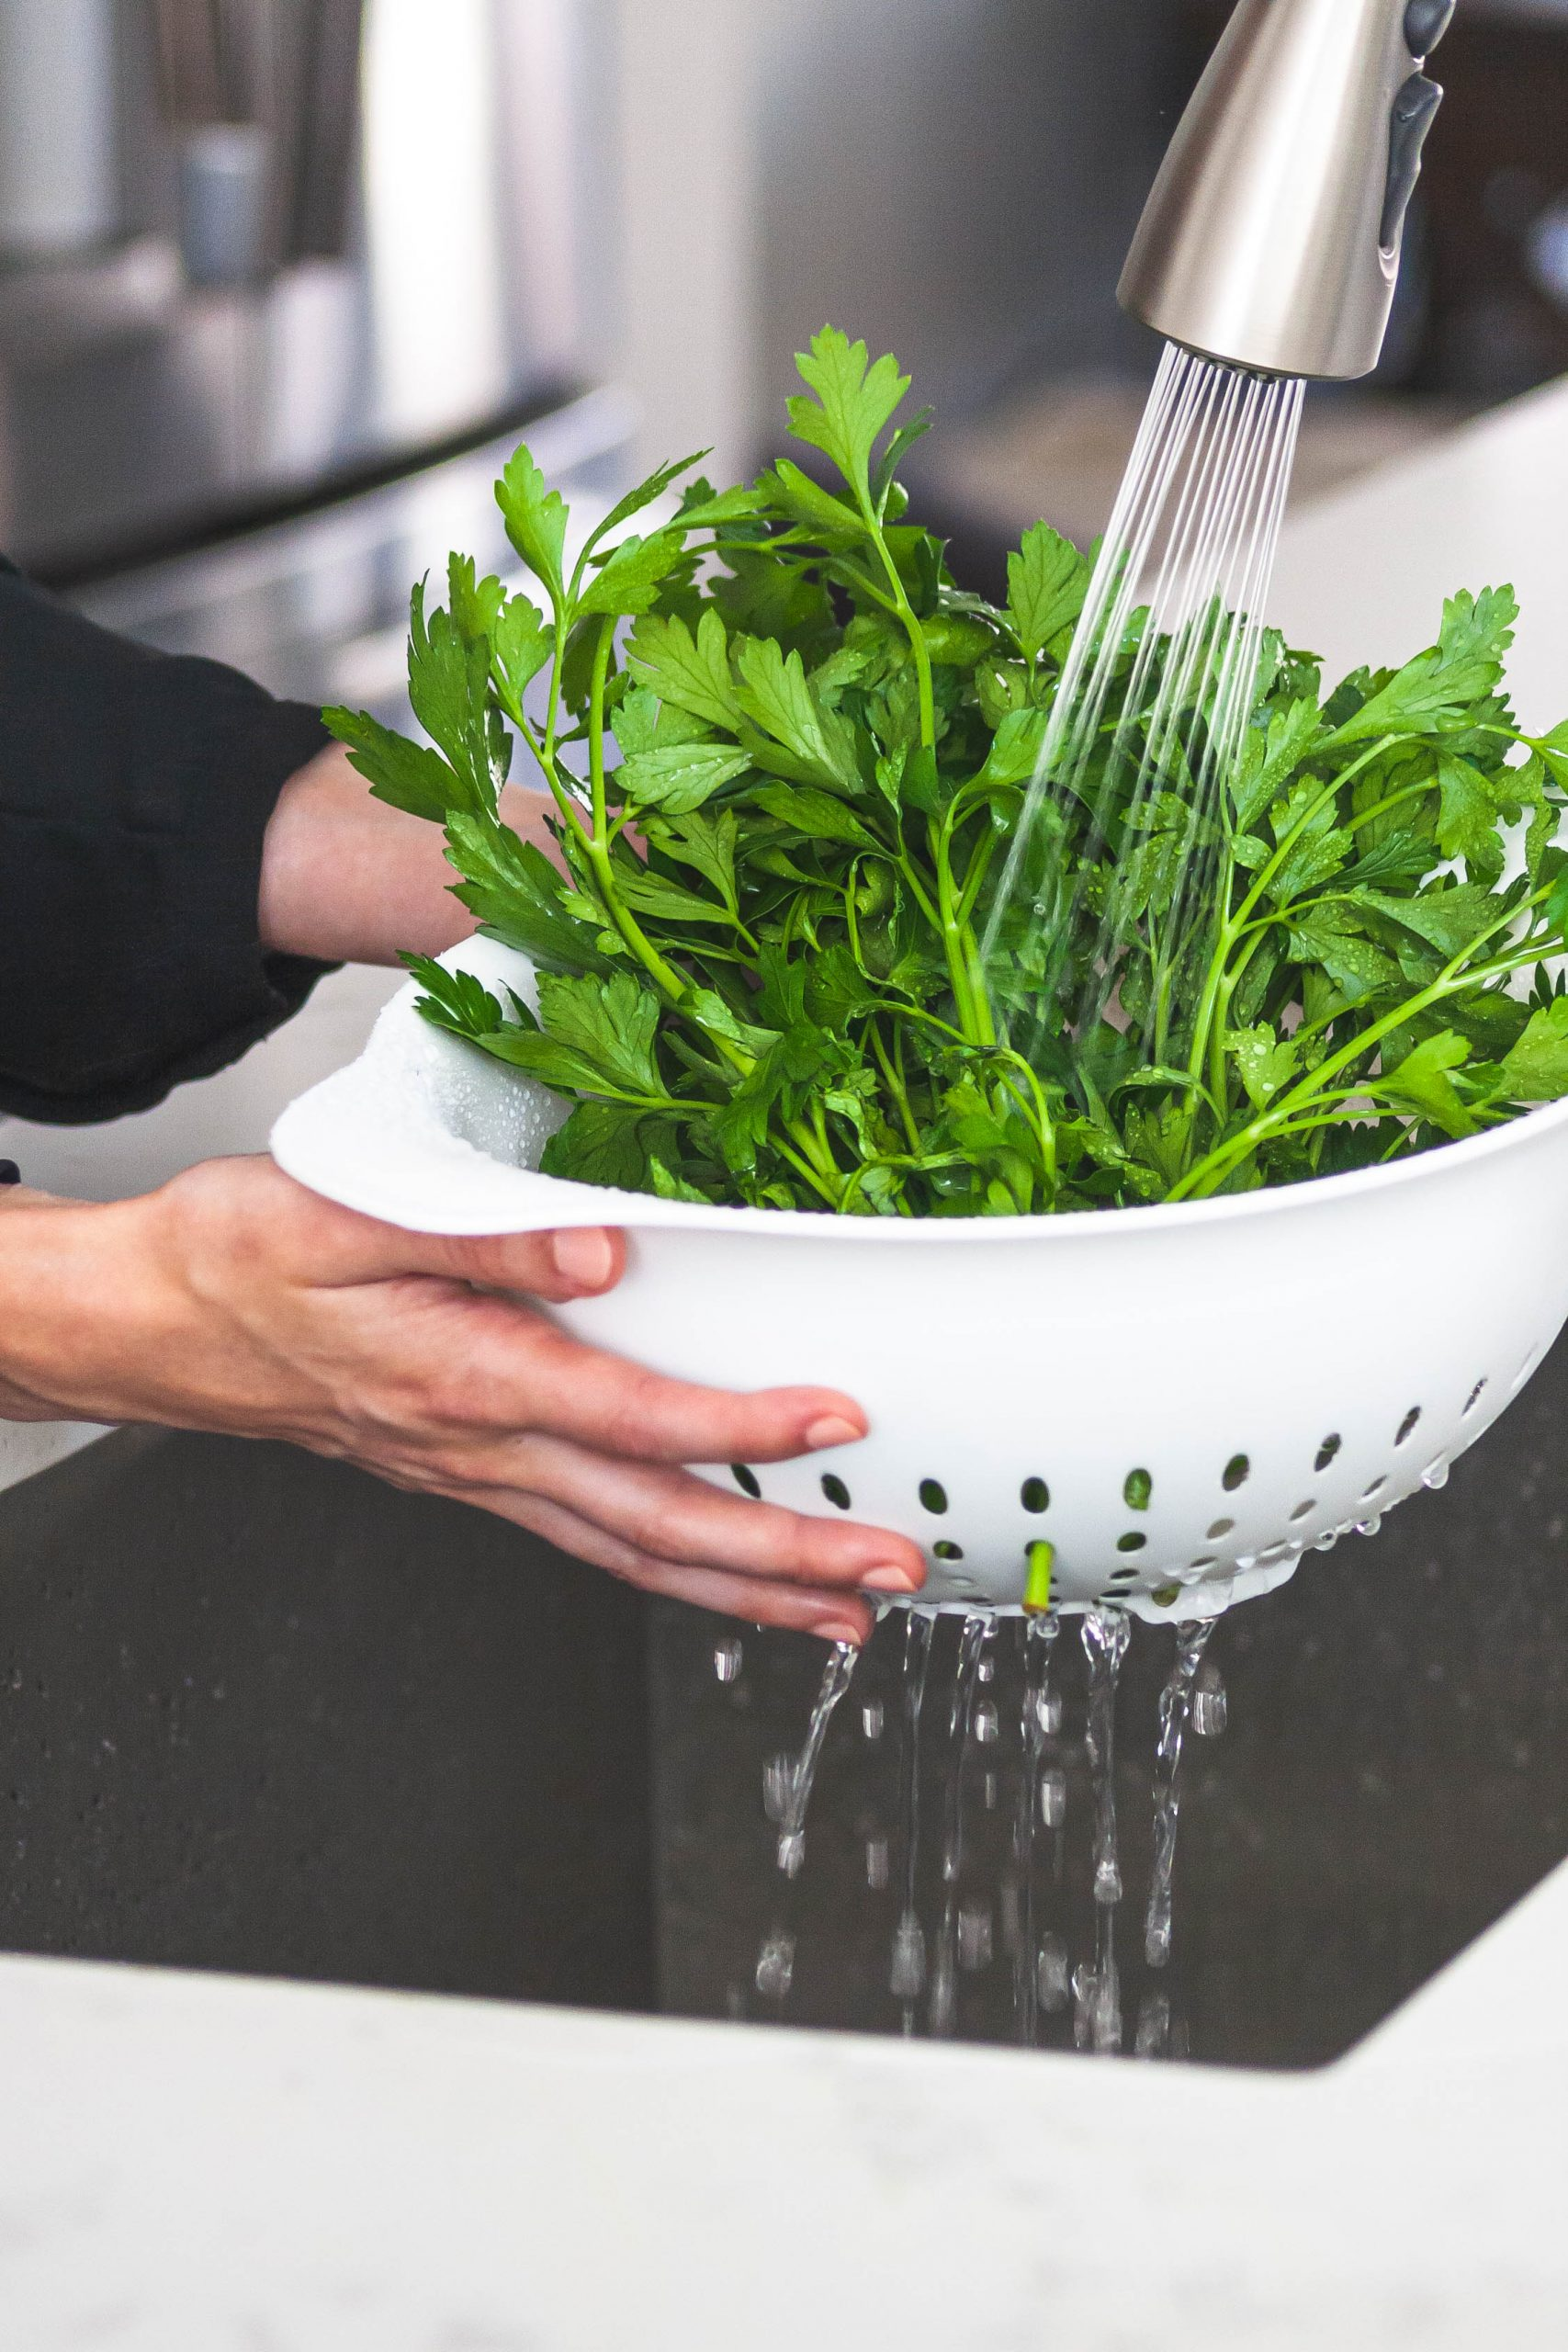 Picture of rinsing herbs in a colander